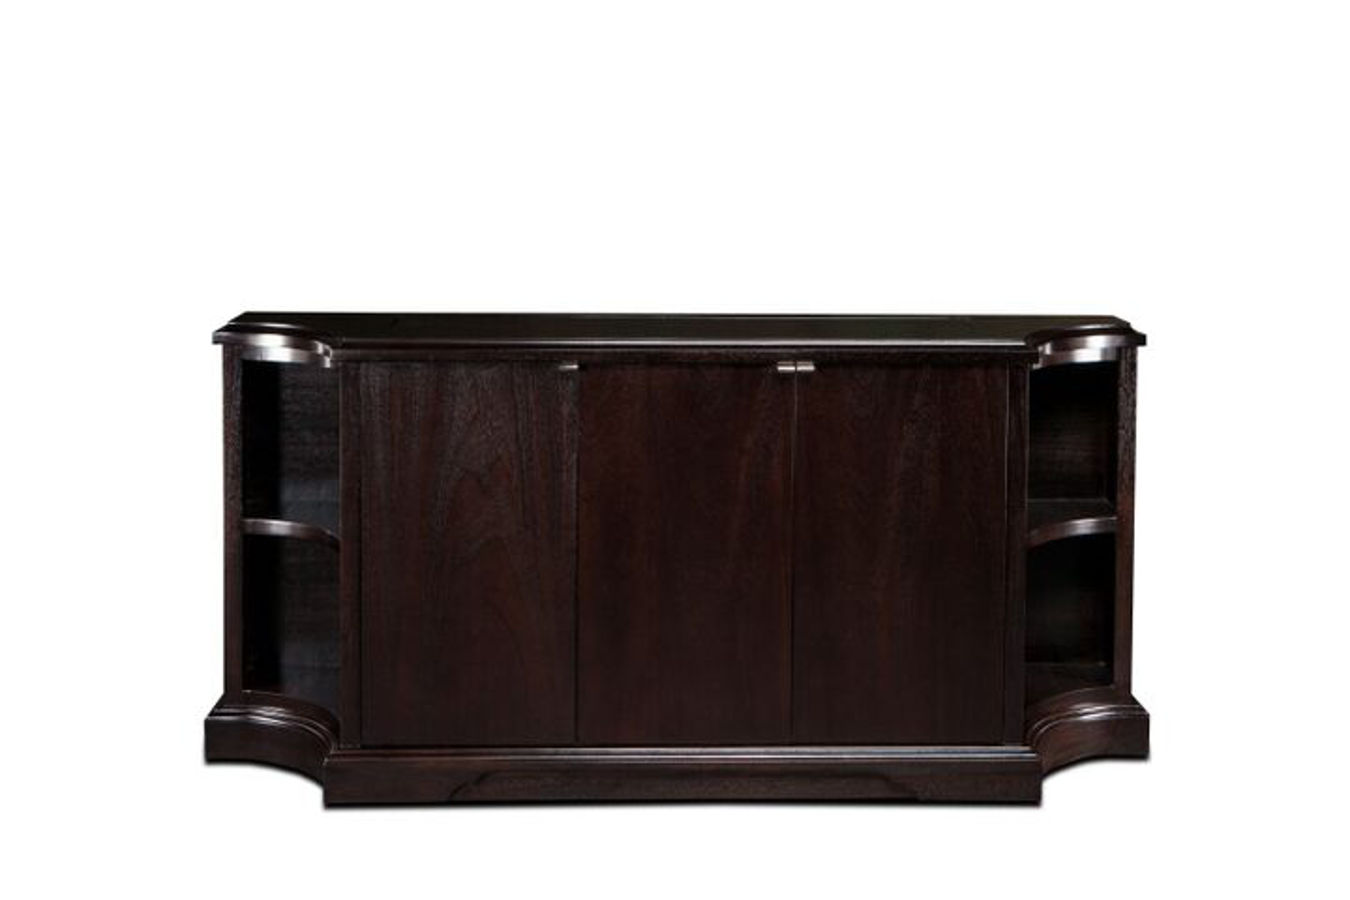 Flat screen tv riser carlton credenza tv lift cabinets for Tv cabinets hidden flat screens